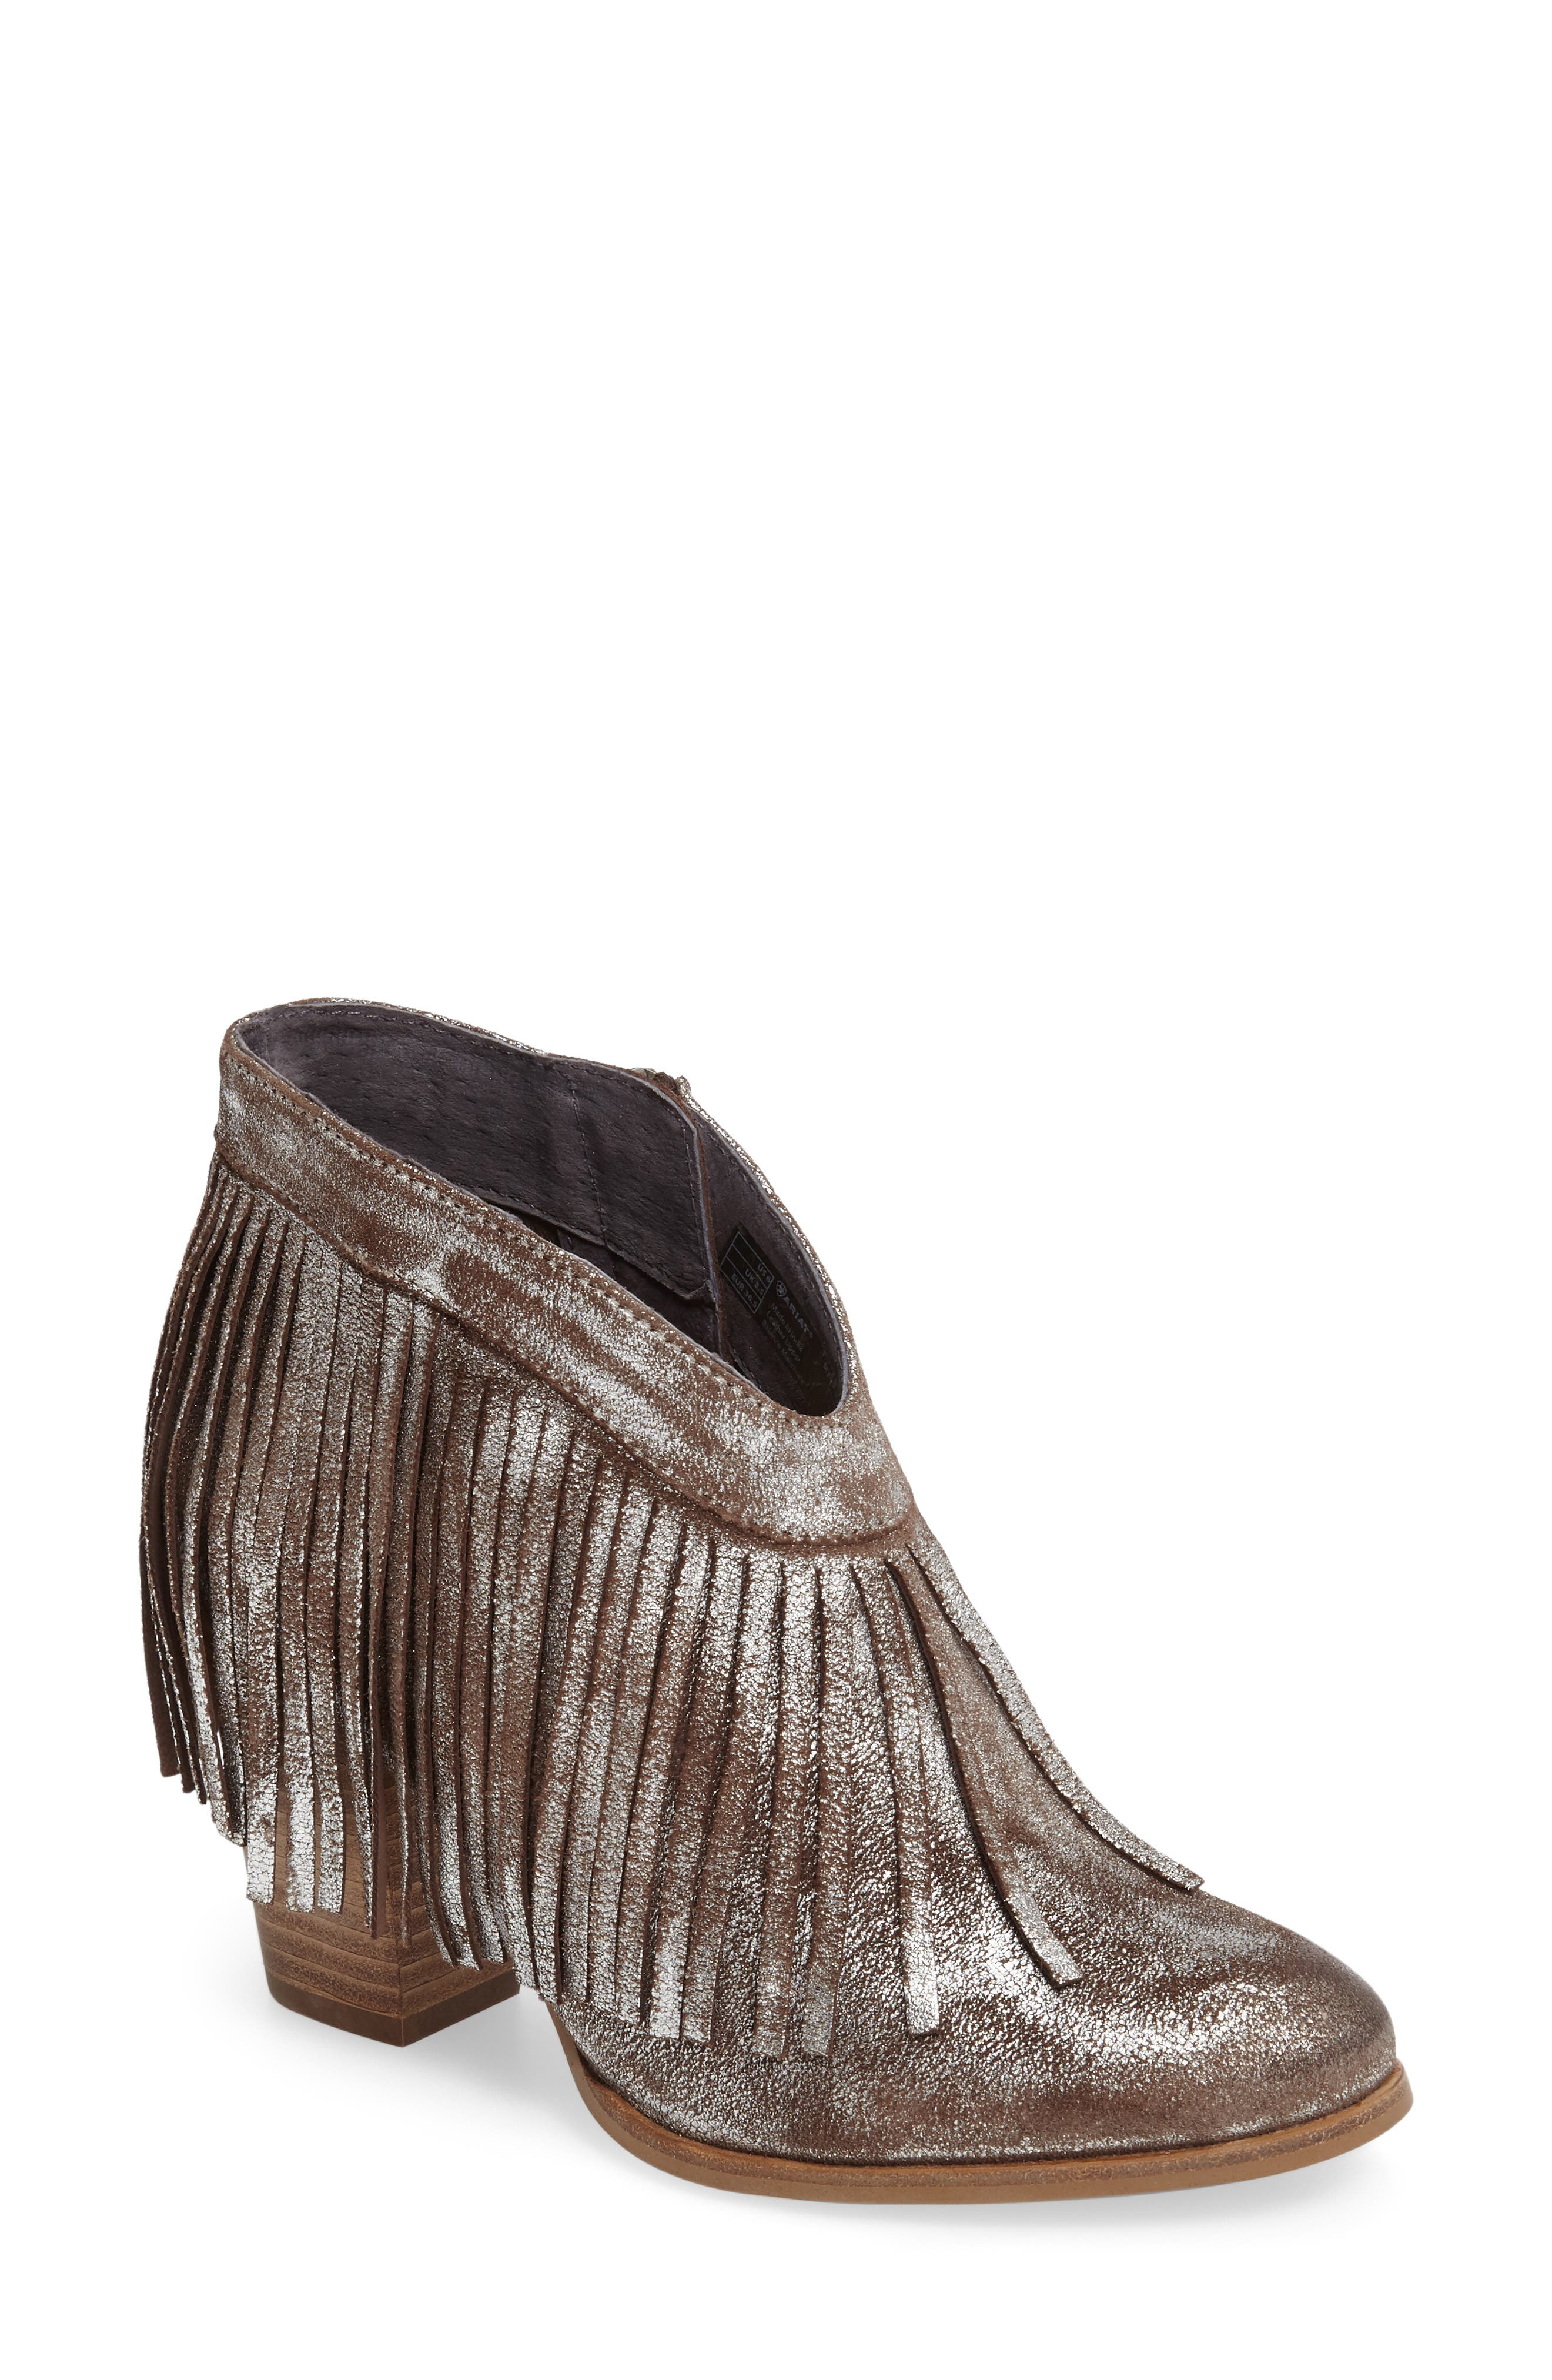 Unbridled Layla Fringed Bootie,                         Main,                         color, 040